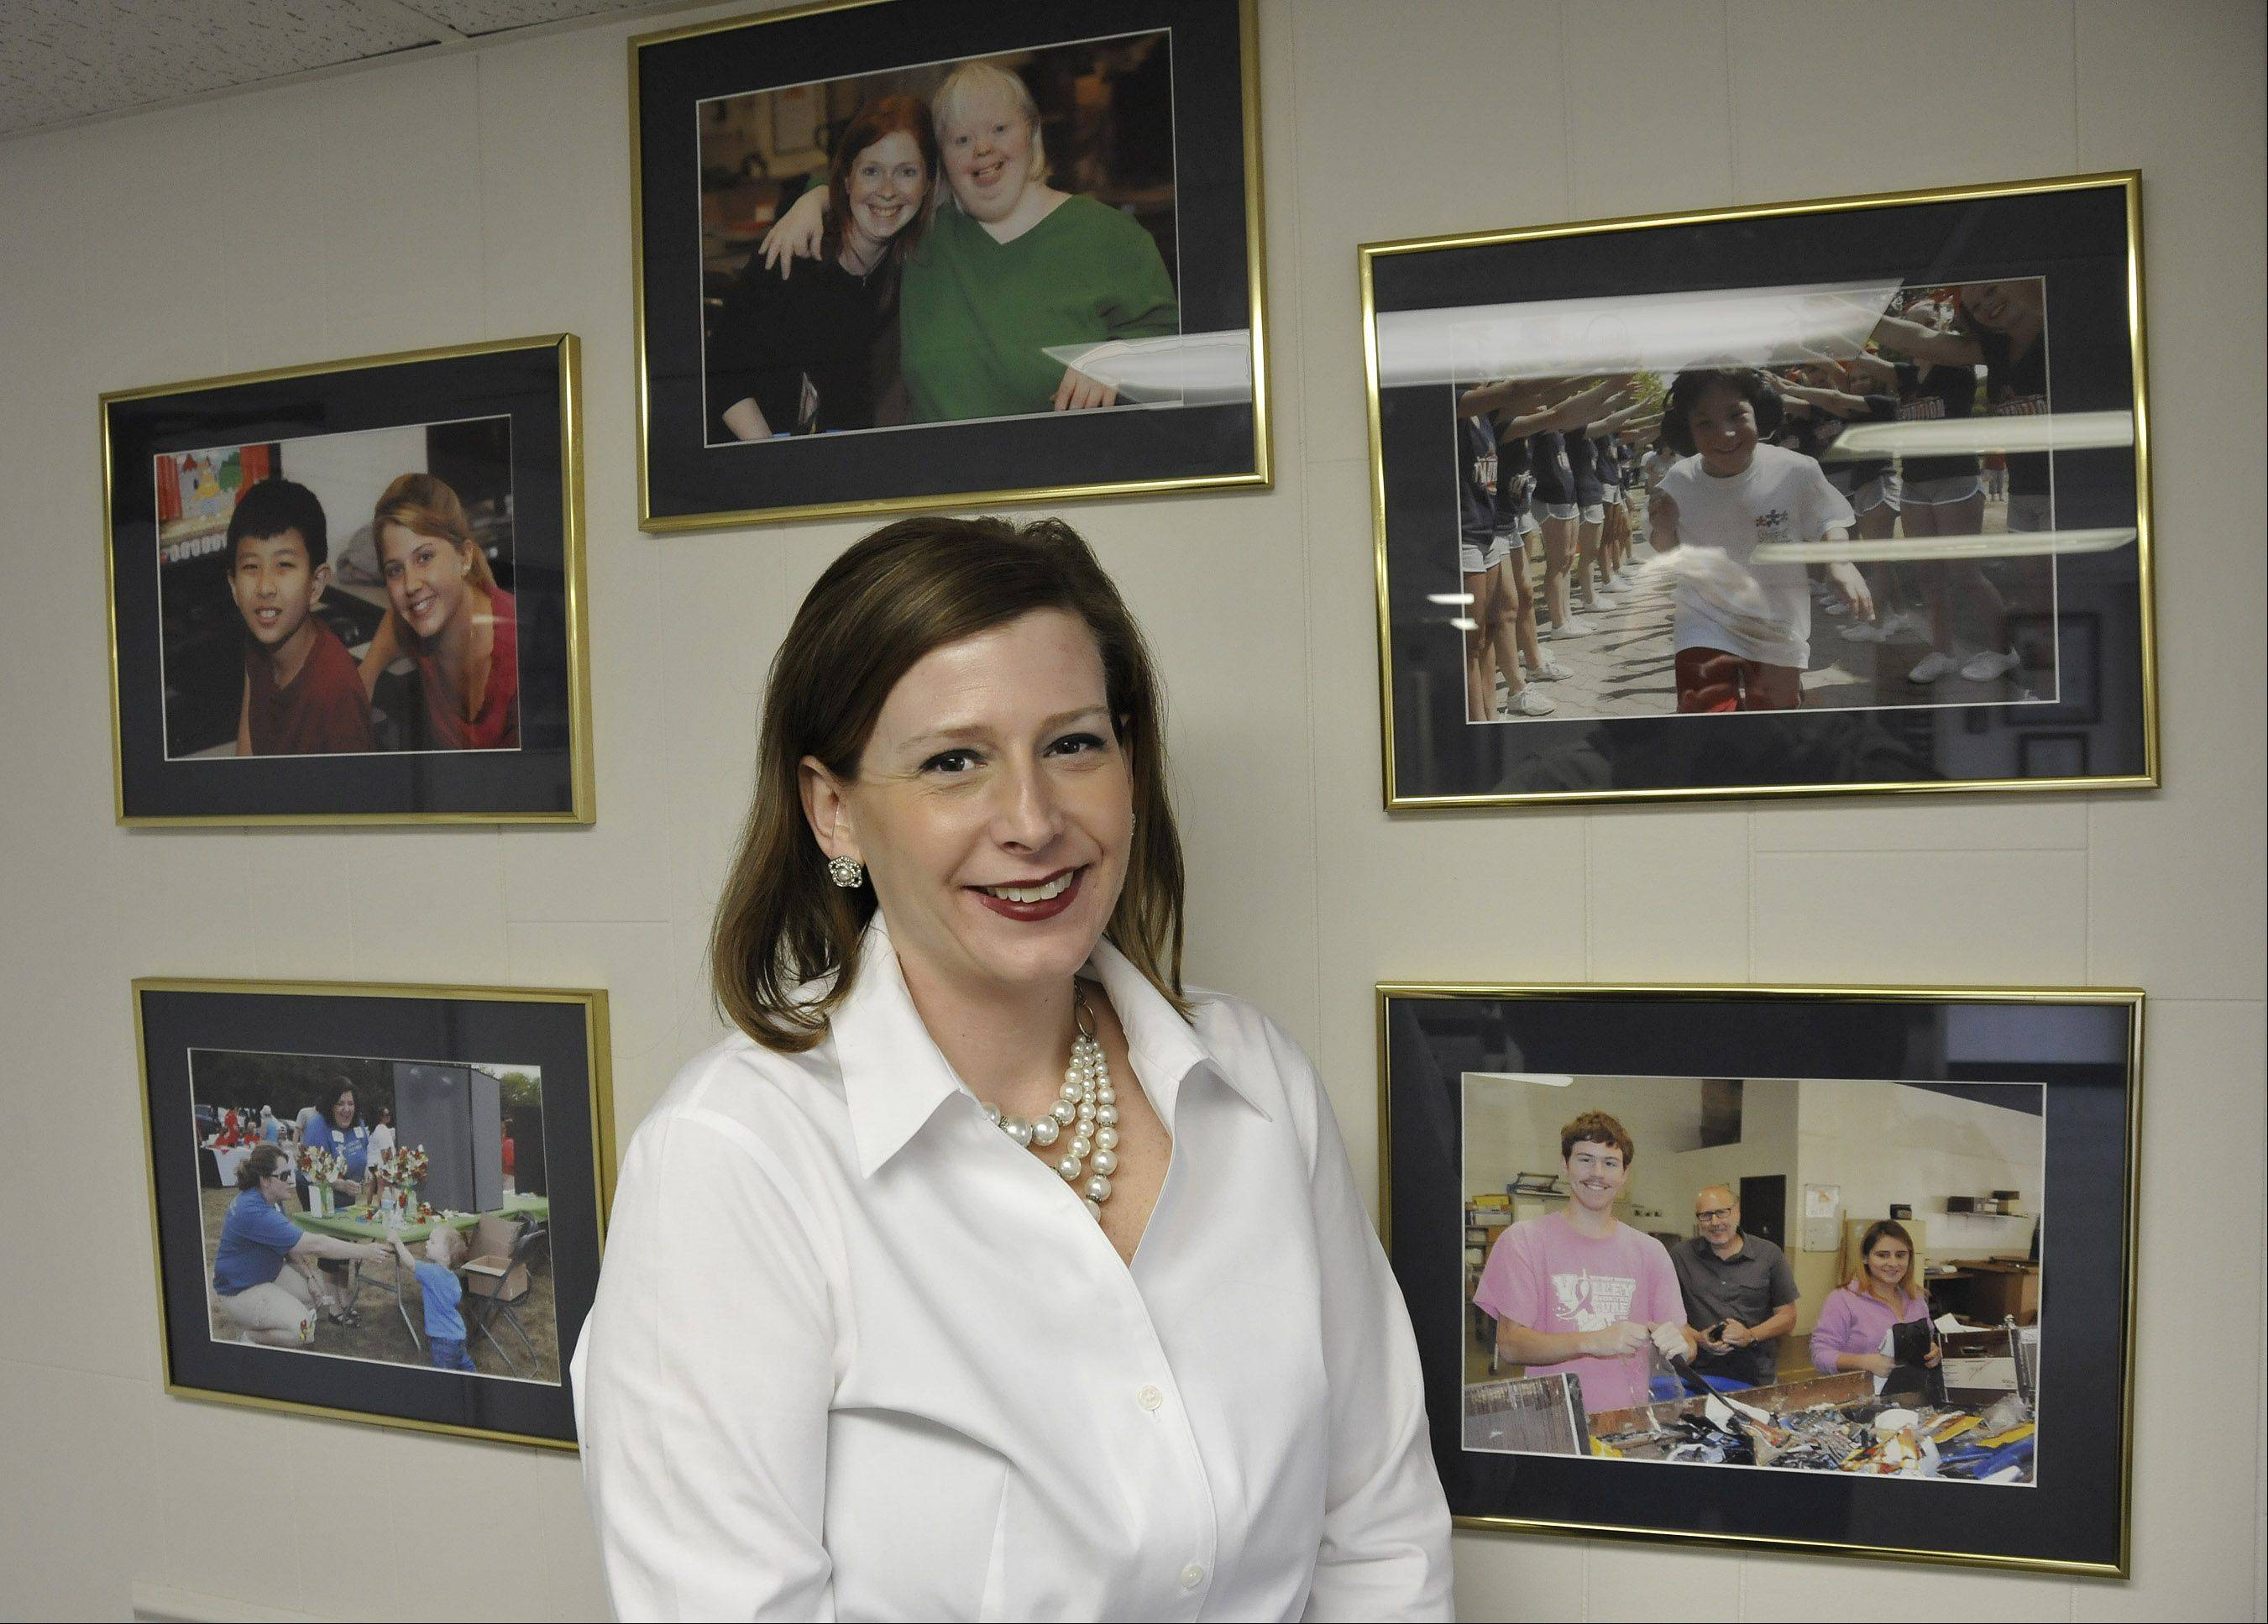 Kristi Landorf, the new CEO and president of Little Friends in Naperville, is surrounded by photos of clients who have autism or other developmental disabilities. Seeing their gains has been a source of great satisfaction, she said.